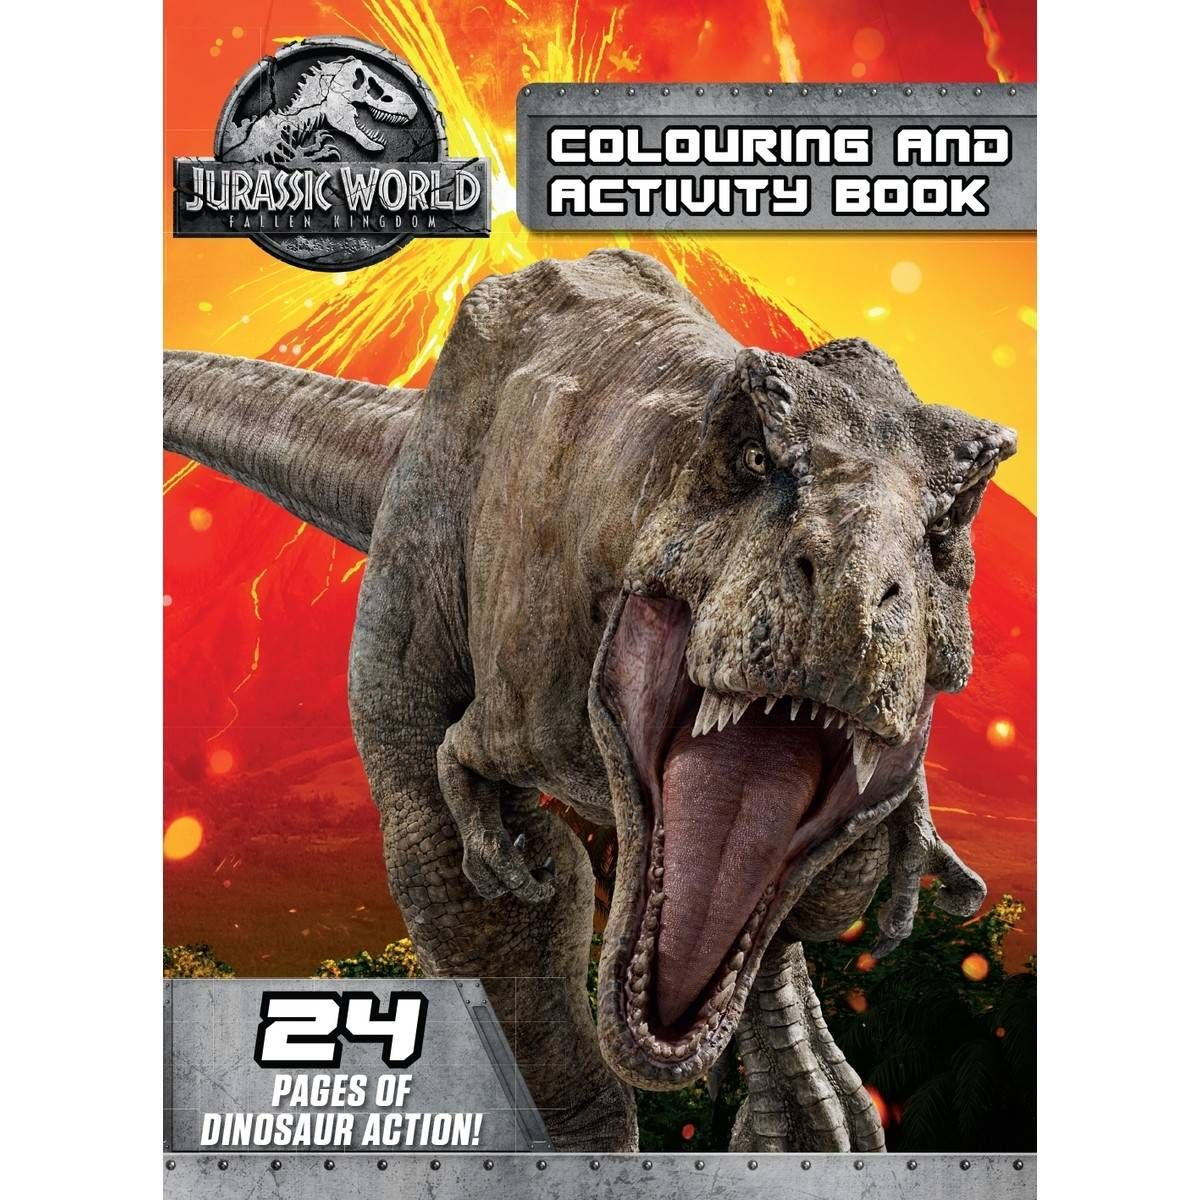 Jurassic World 2 Fallen Kingdom Colouring And Activity Book Jurassic World Falling Kingdoms Jurassic World Characters